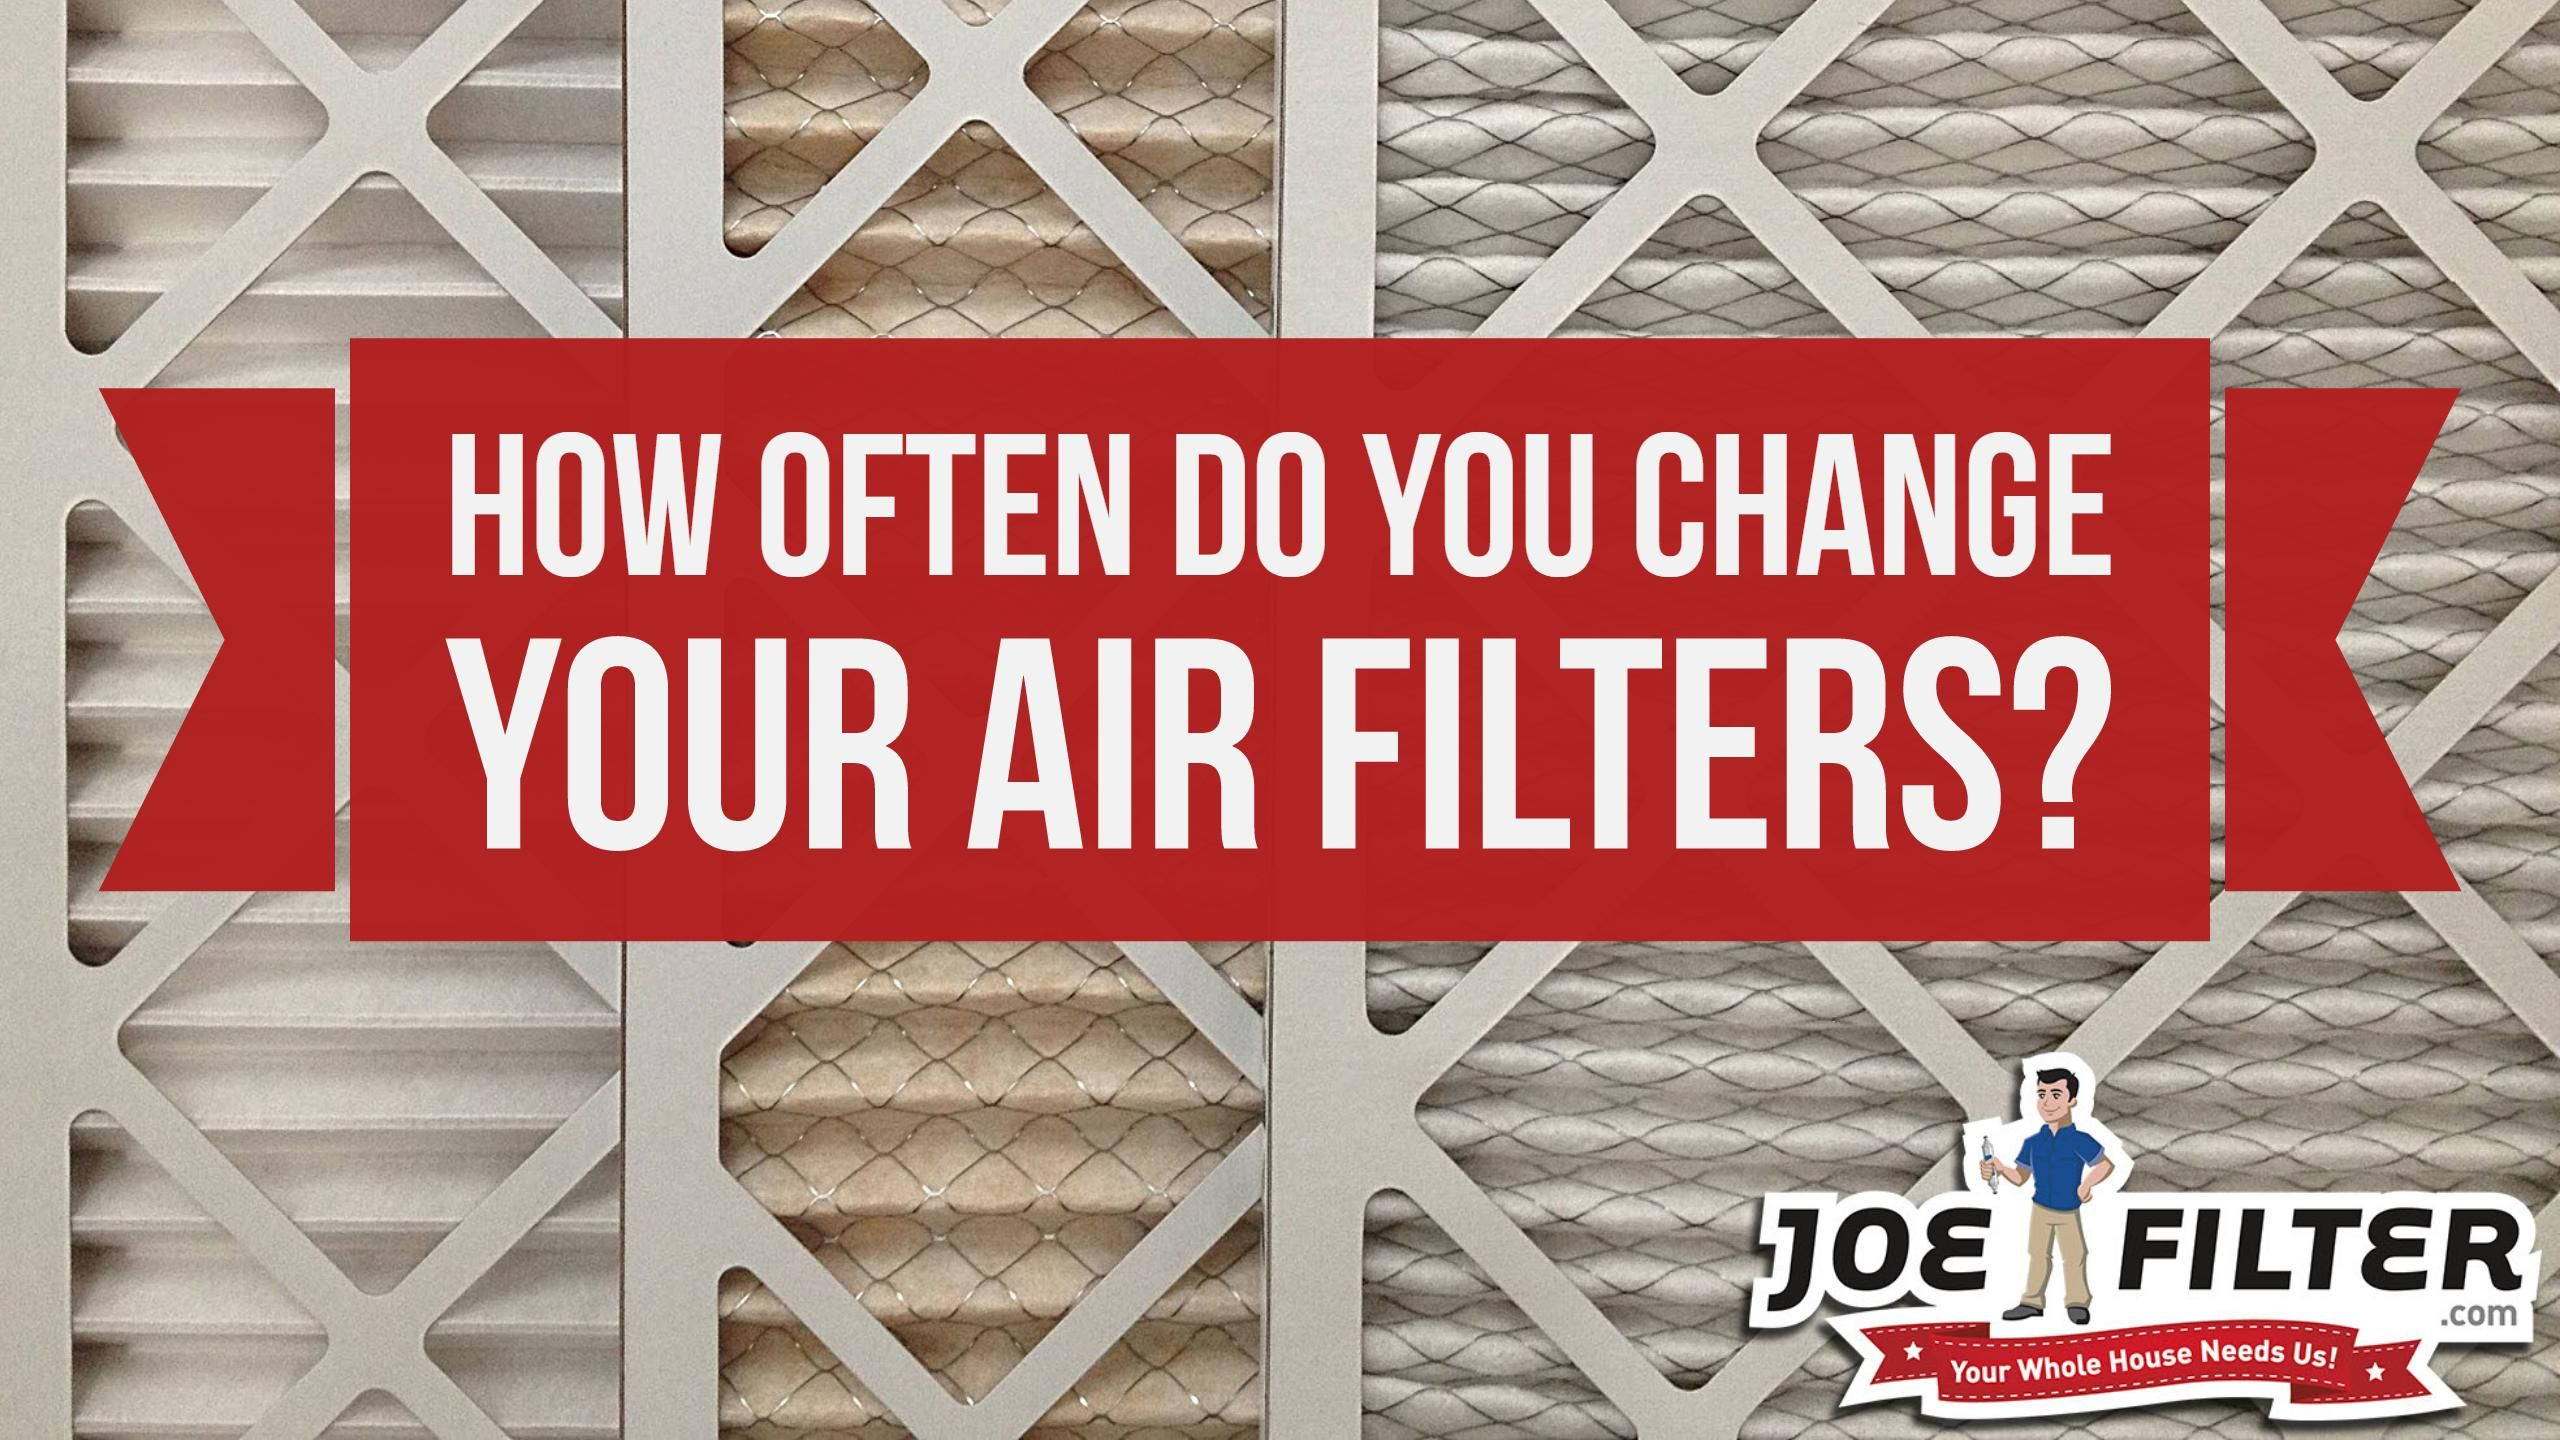 How often do you change your homes air filters? We